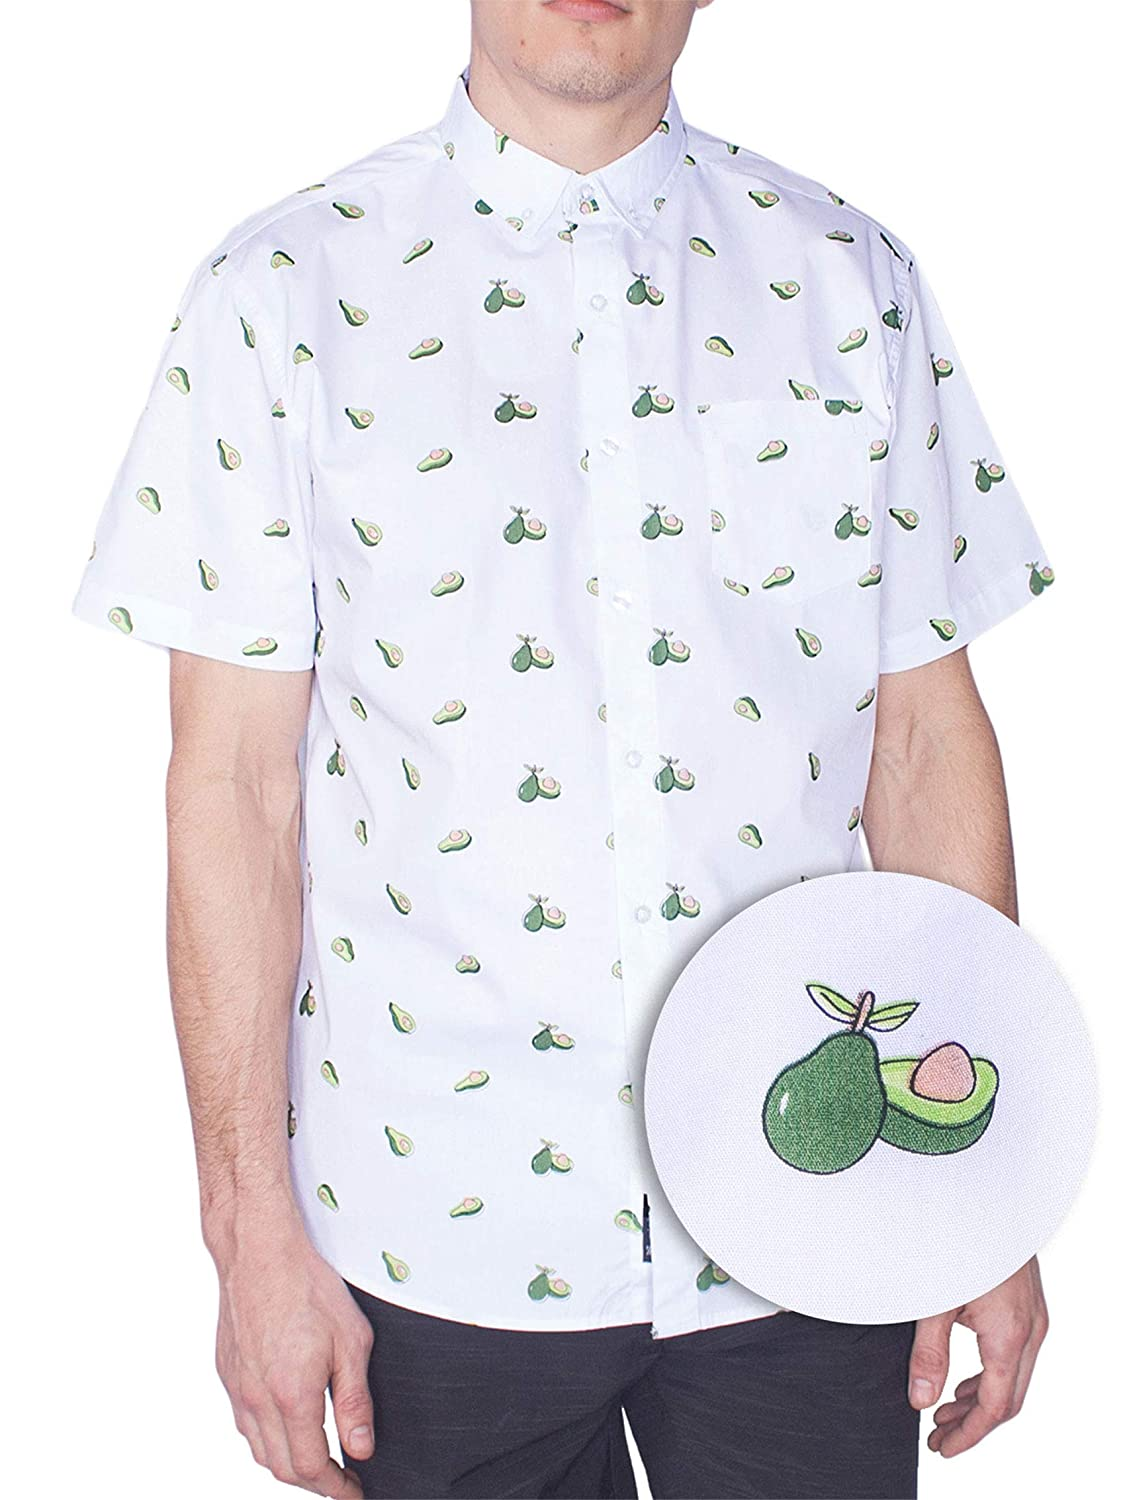 852463fe Men Button Down Shirt - Visive Adults Casual Short Sleeve Food print Button  Down Shirt with 1 Chested Pockets - Choose one that fits you from Small to  ...